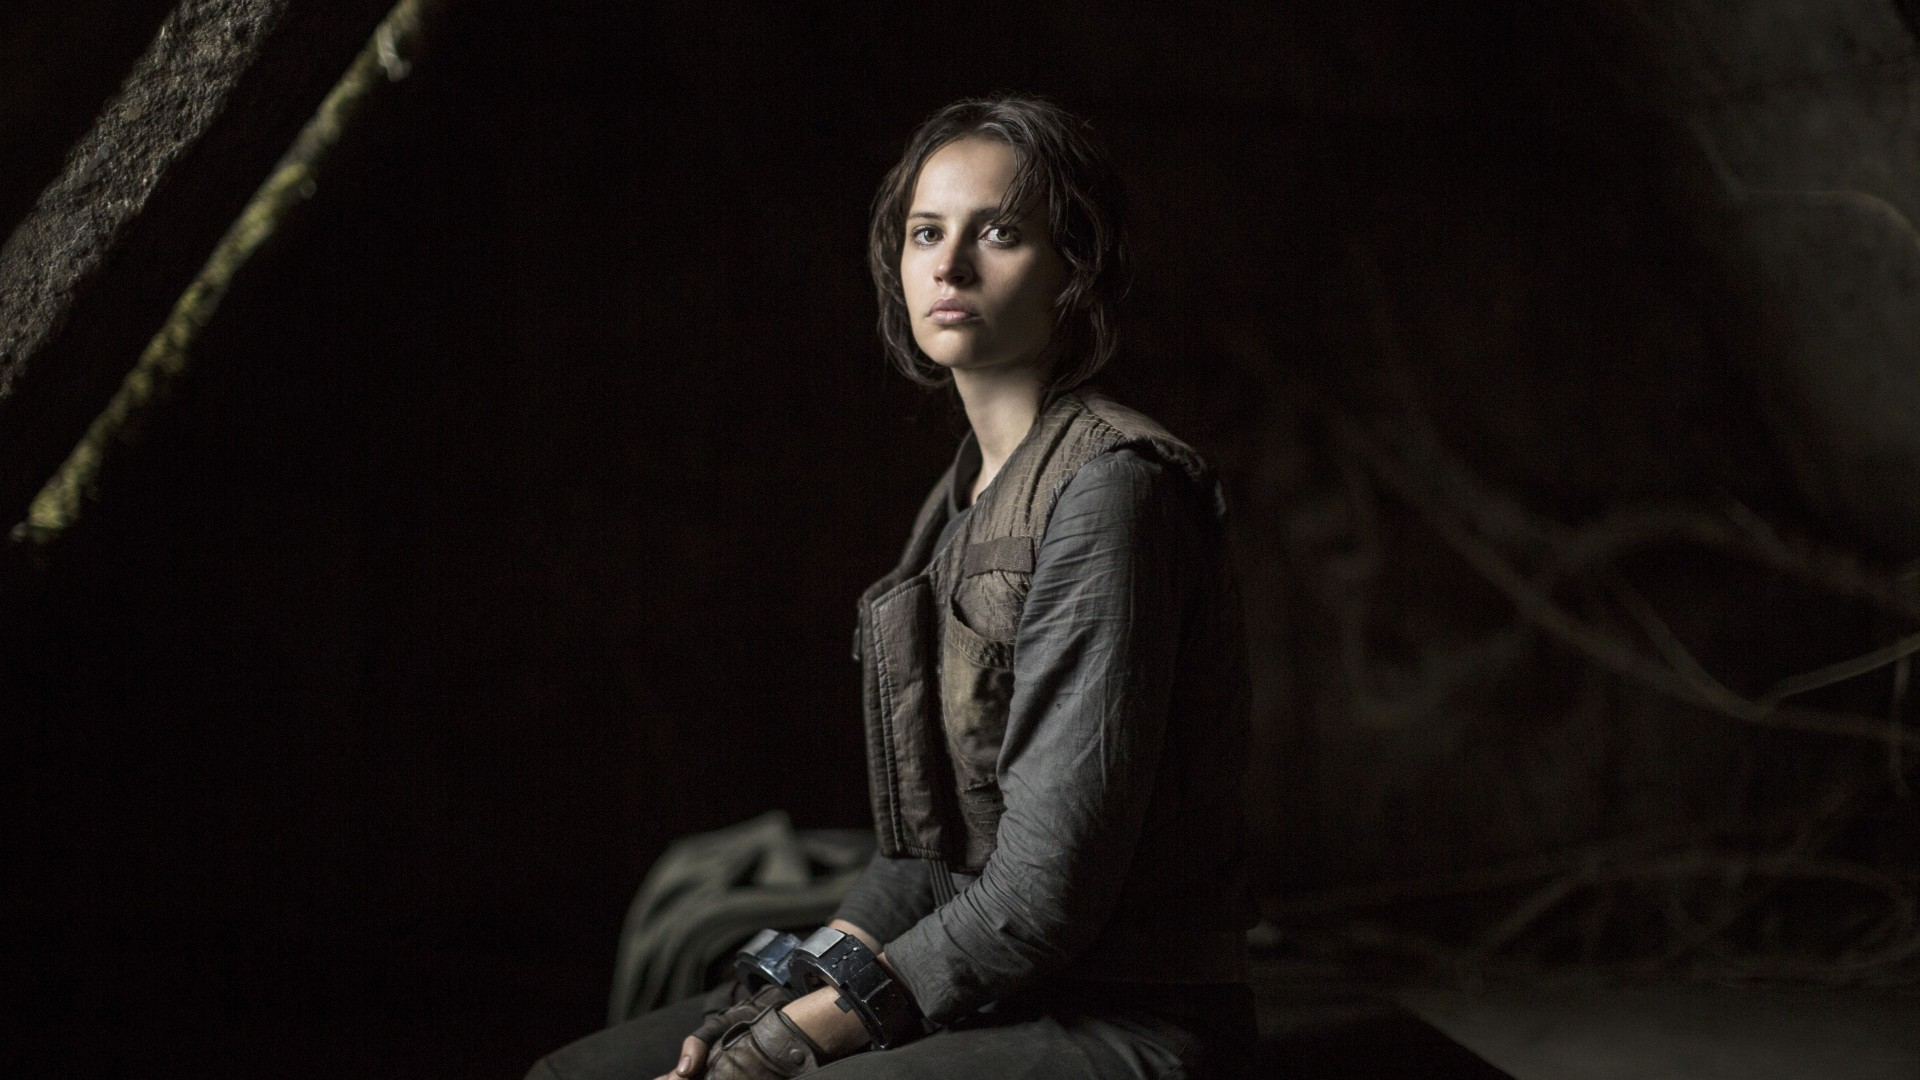 felicty jones in good star wars company for rogue on 2016 images